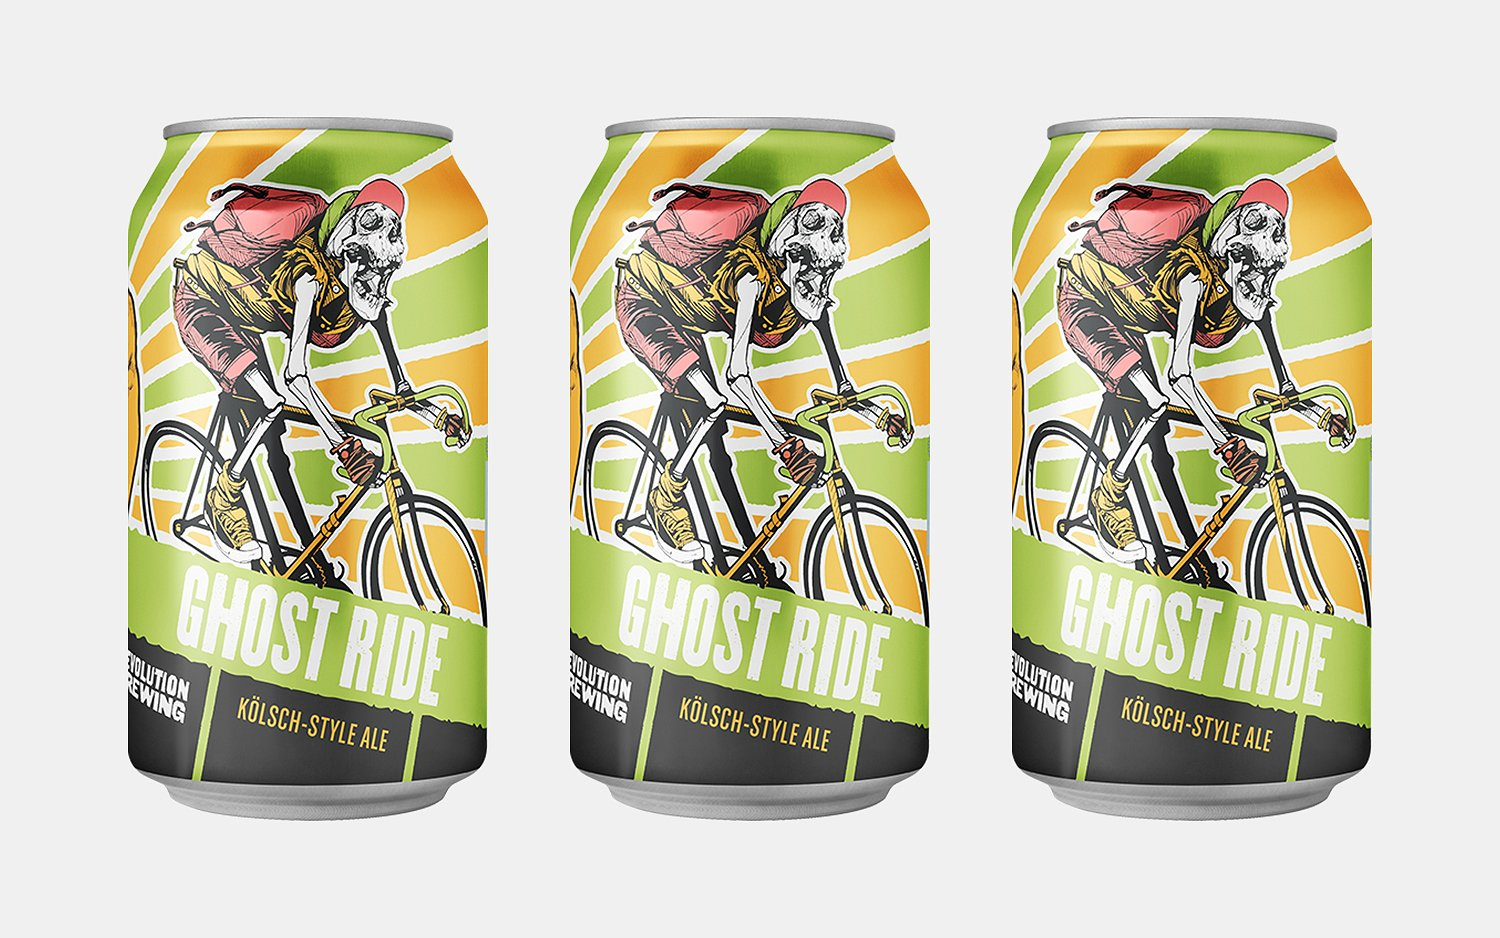 Revolution Brewing Ghost Ride Kölsch-Style Ale